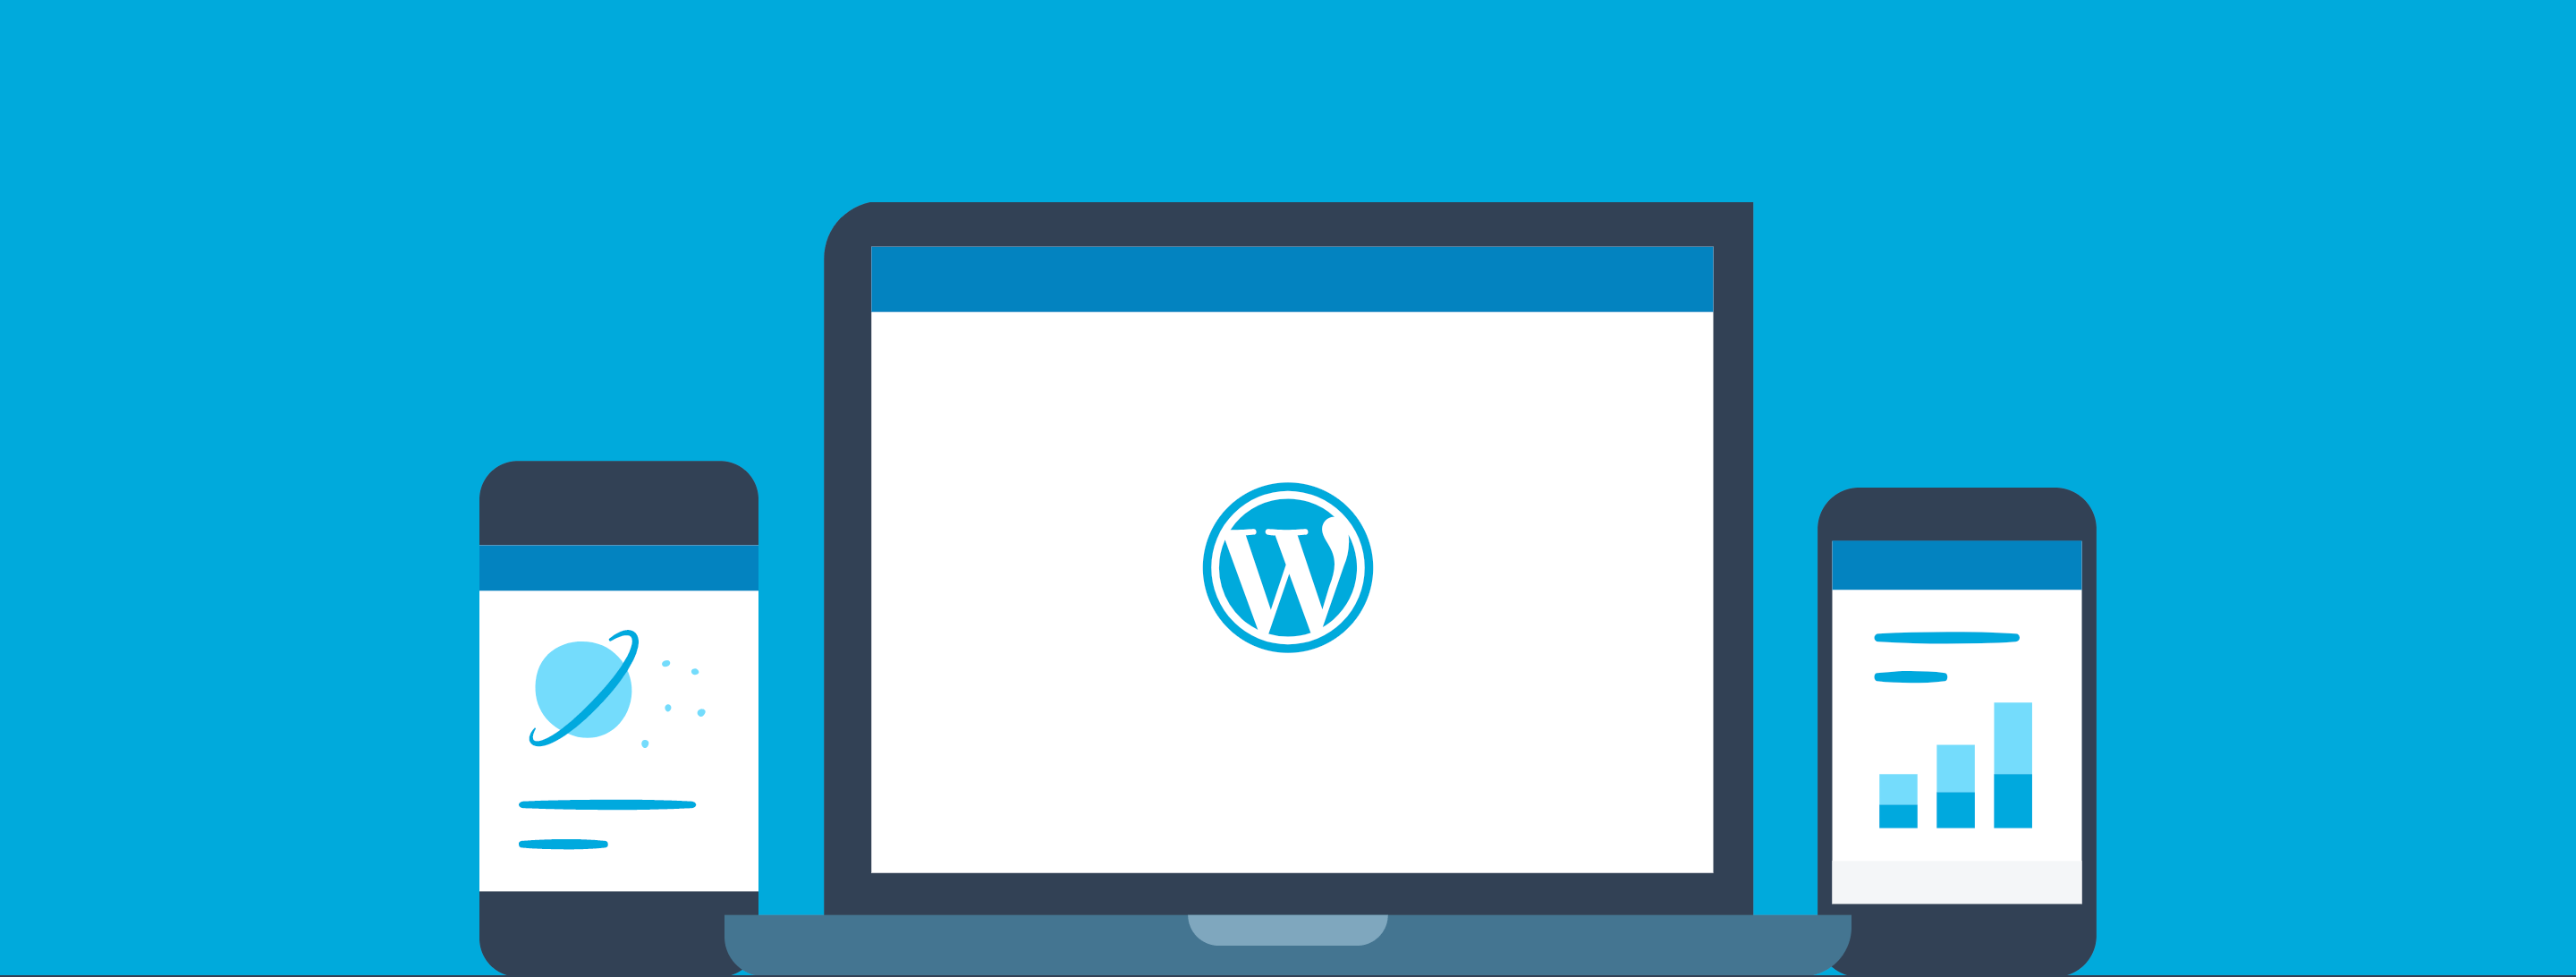 WordPress Desktop and Mobile Apps